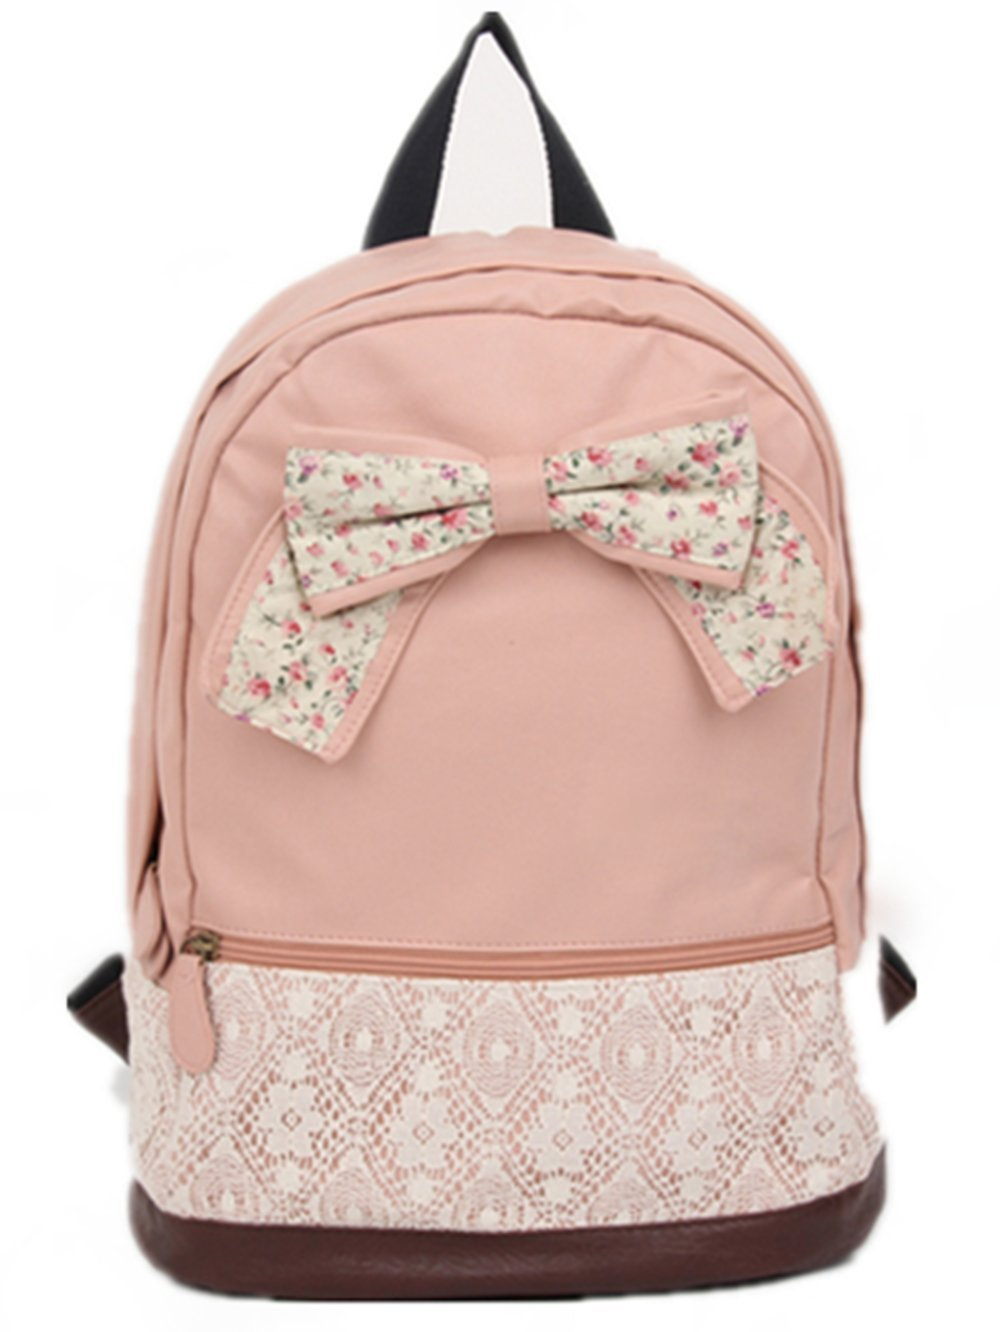 16e876d20d Stores To Buy Cute Backpacks- Fenix Toulouse Handball